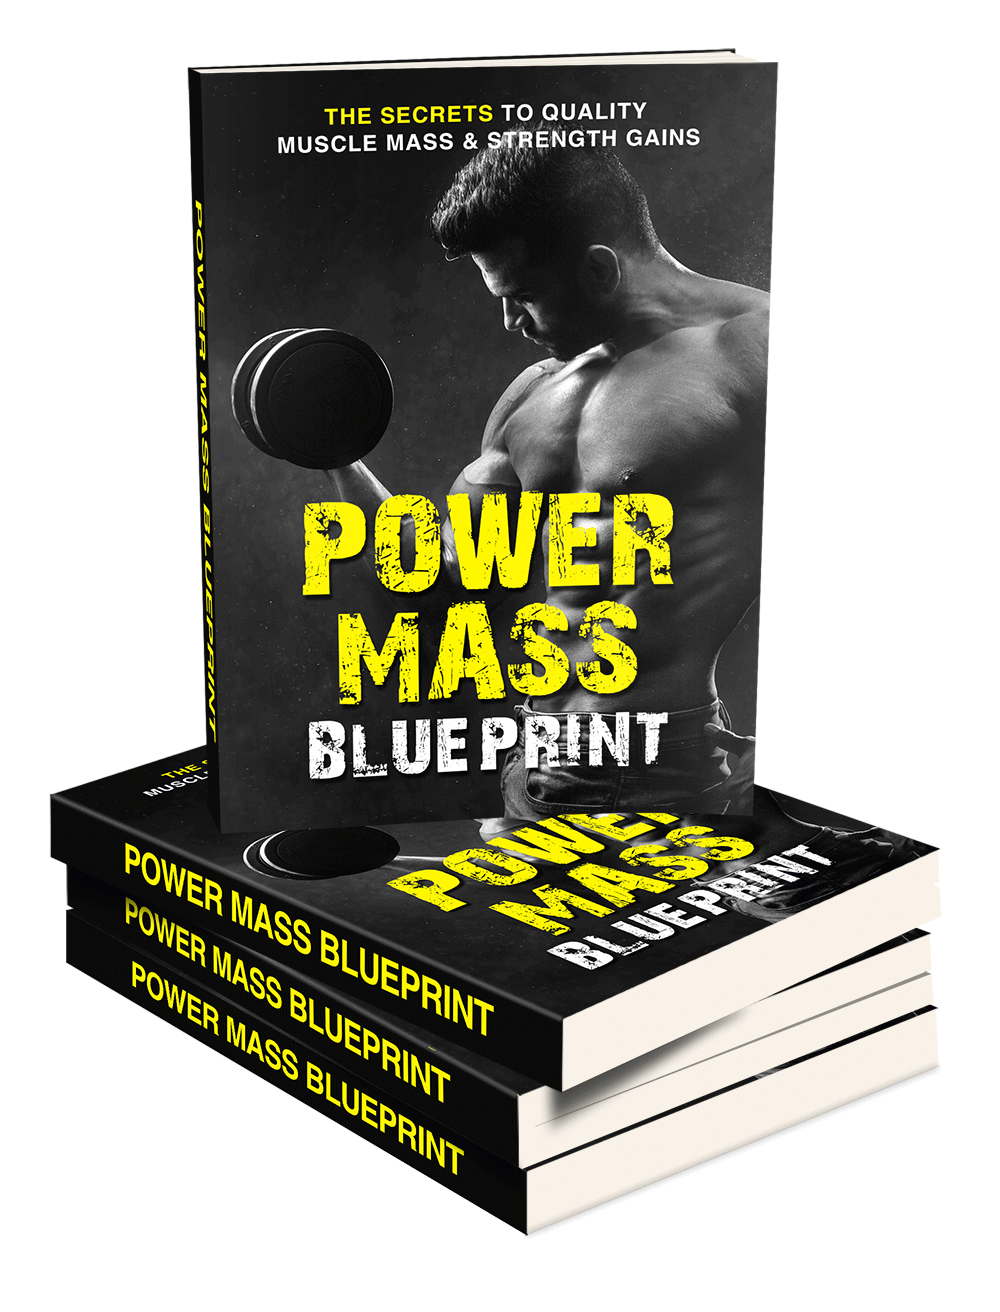 The secrets to quality muscle mass and strength gain!.